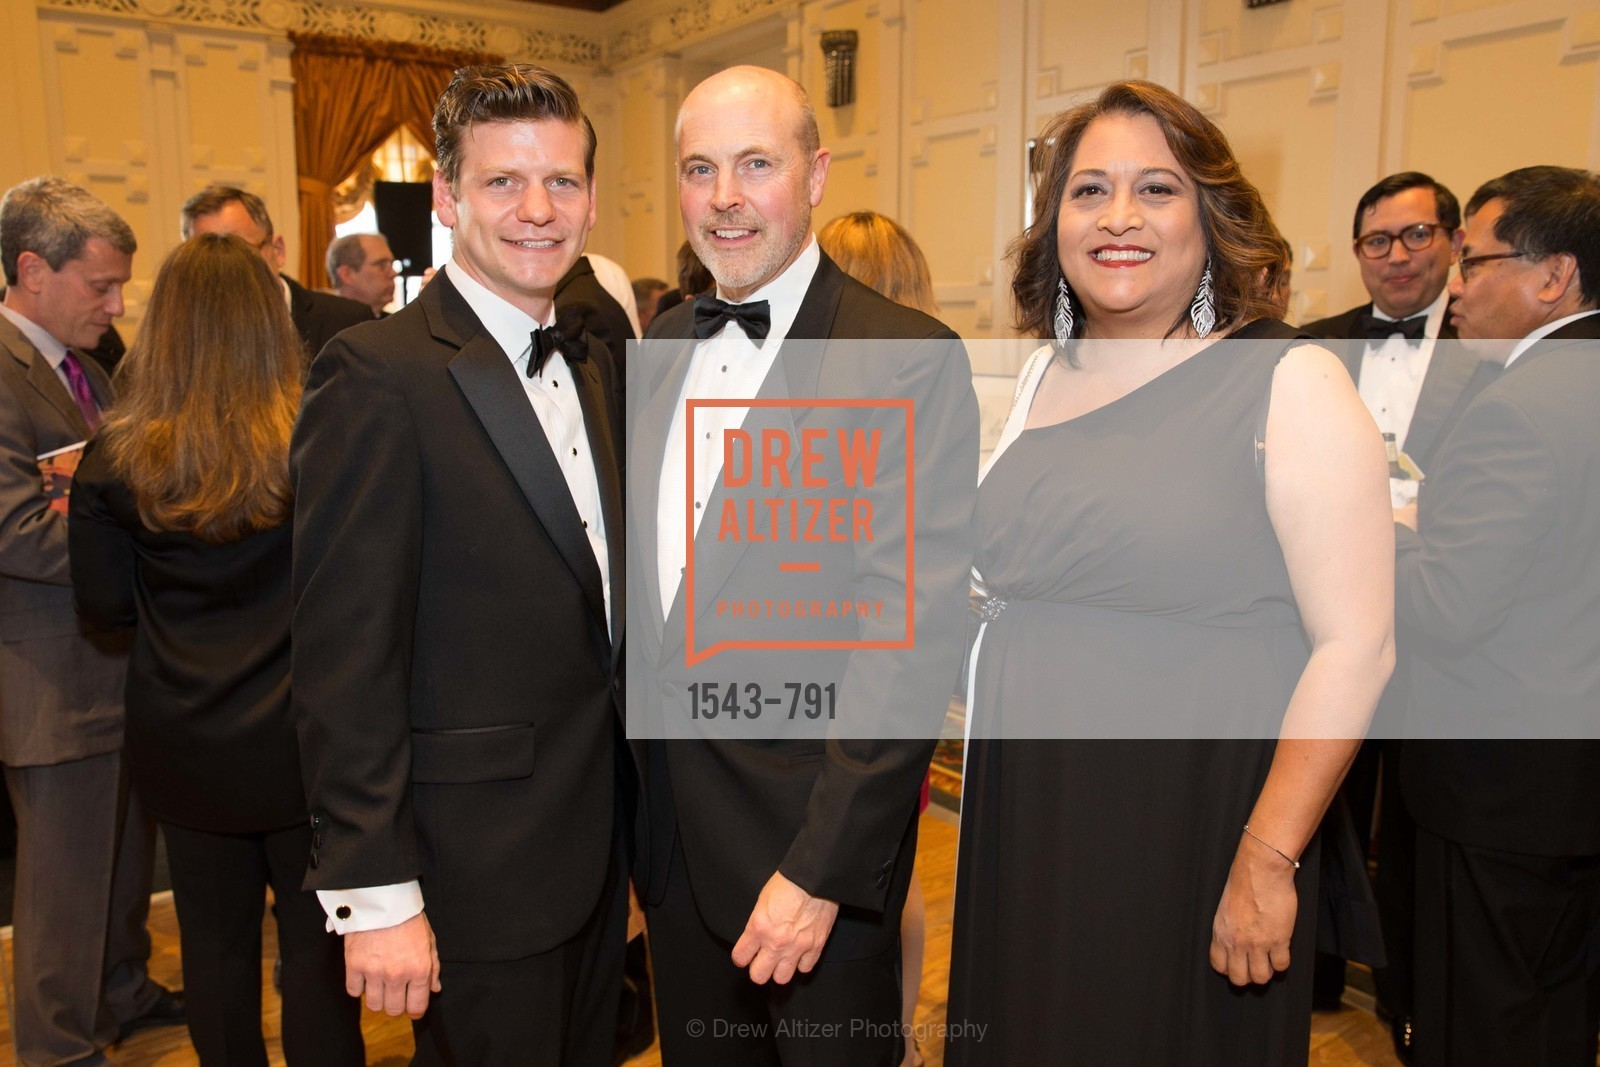 Justin Greving, Chandler McCoy, Julianne Polanco, SAN FRANCISCO HERITAGE Soiree 2015, US, April 19th, 2015,Drew Altizer, Drew Altizer Photography, full-service agency, private events, San Francisco photographer, photographer california